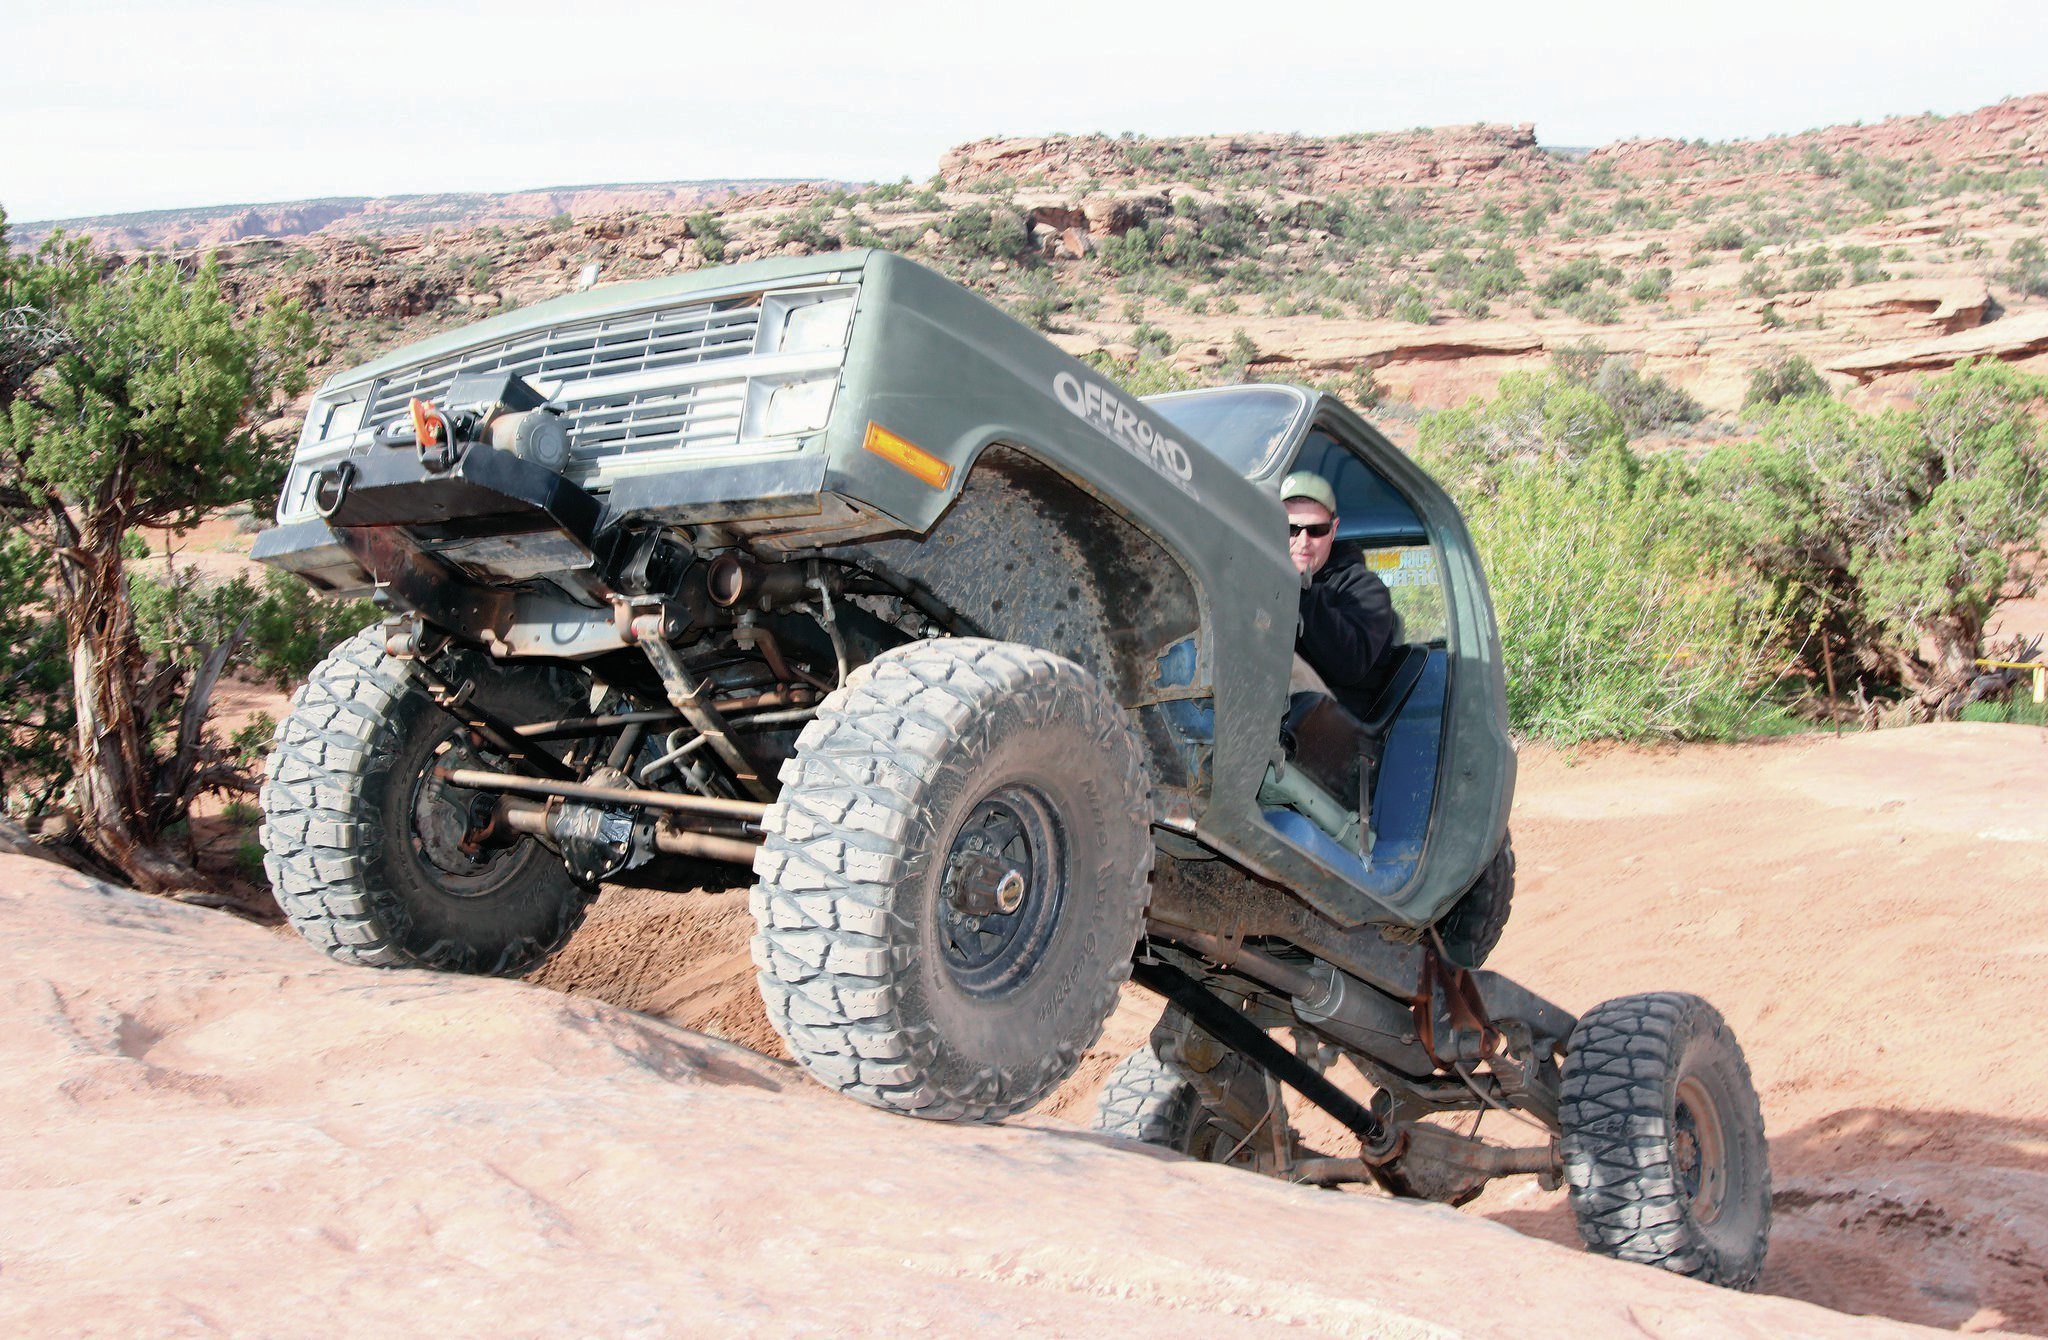 Every time we see this K20, it's losing more weight. This time, the doors are gone. It's owned by Dan Merrill and sports a 6.2L diesel engine. Given that Dan's K20 is still sporting the factory Dana 44 front axle, losing weight is most definitely a good idea.